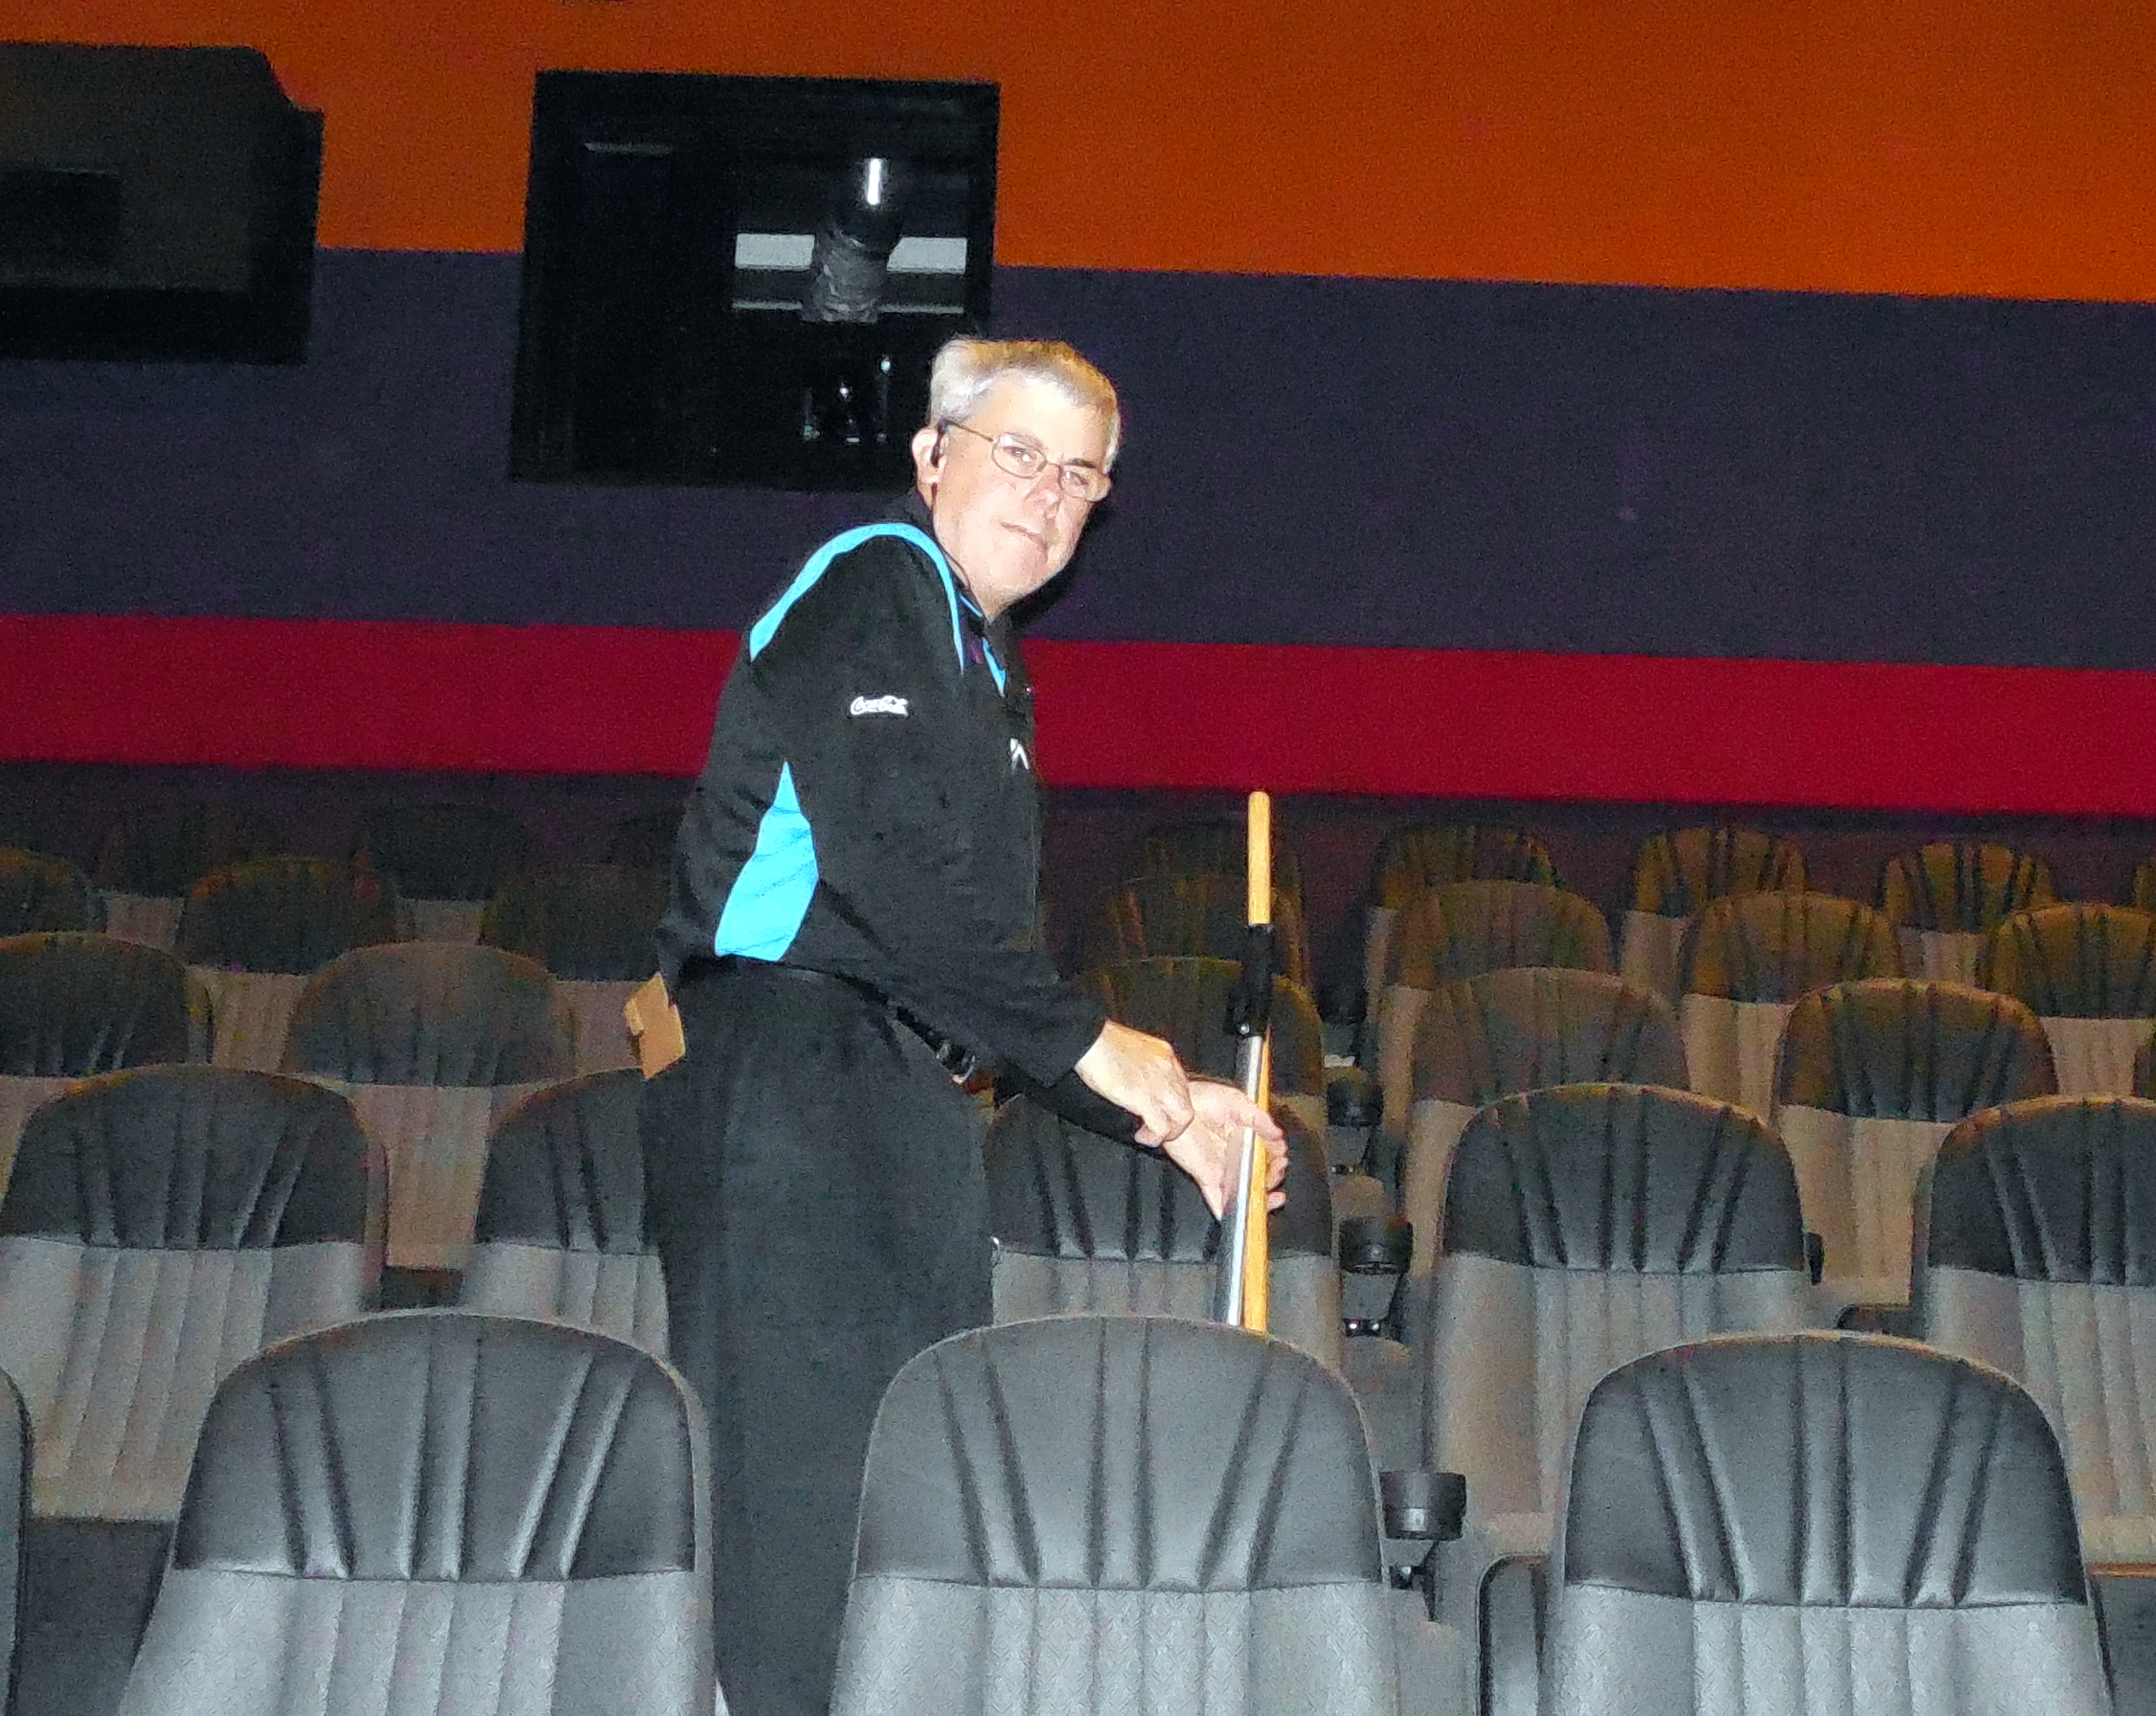 80 Regal-Linc cleaning theatre.jpg